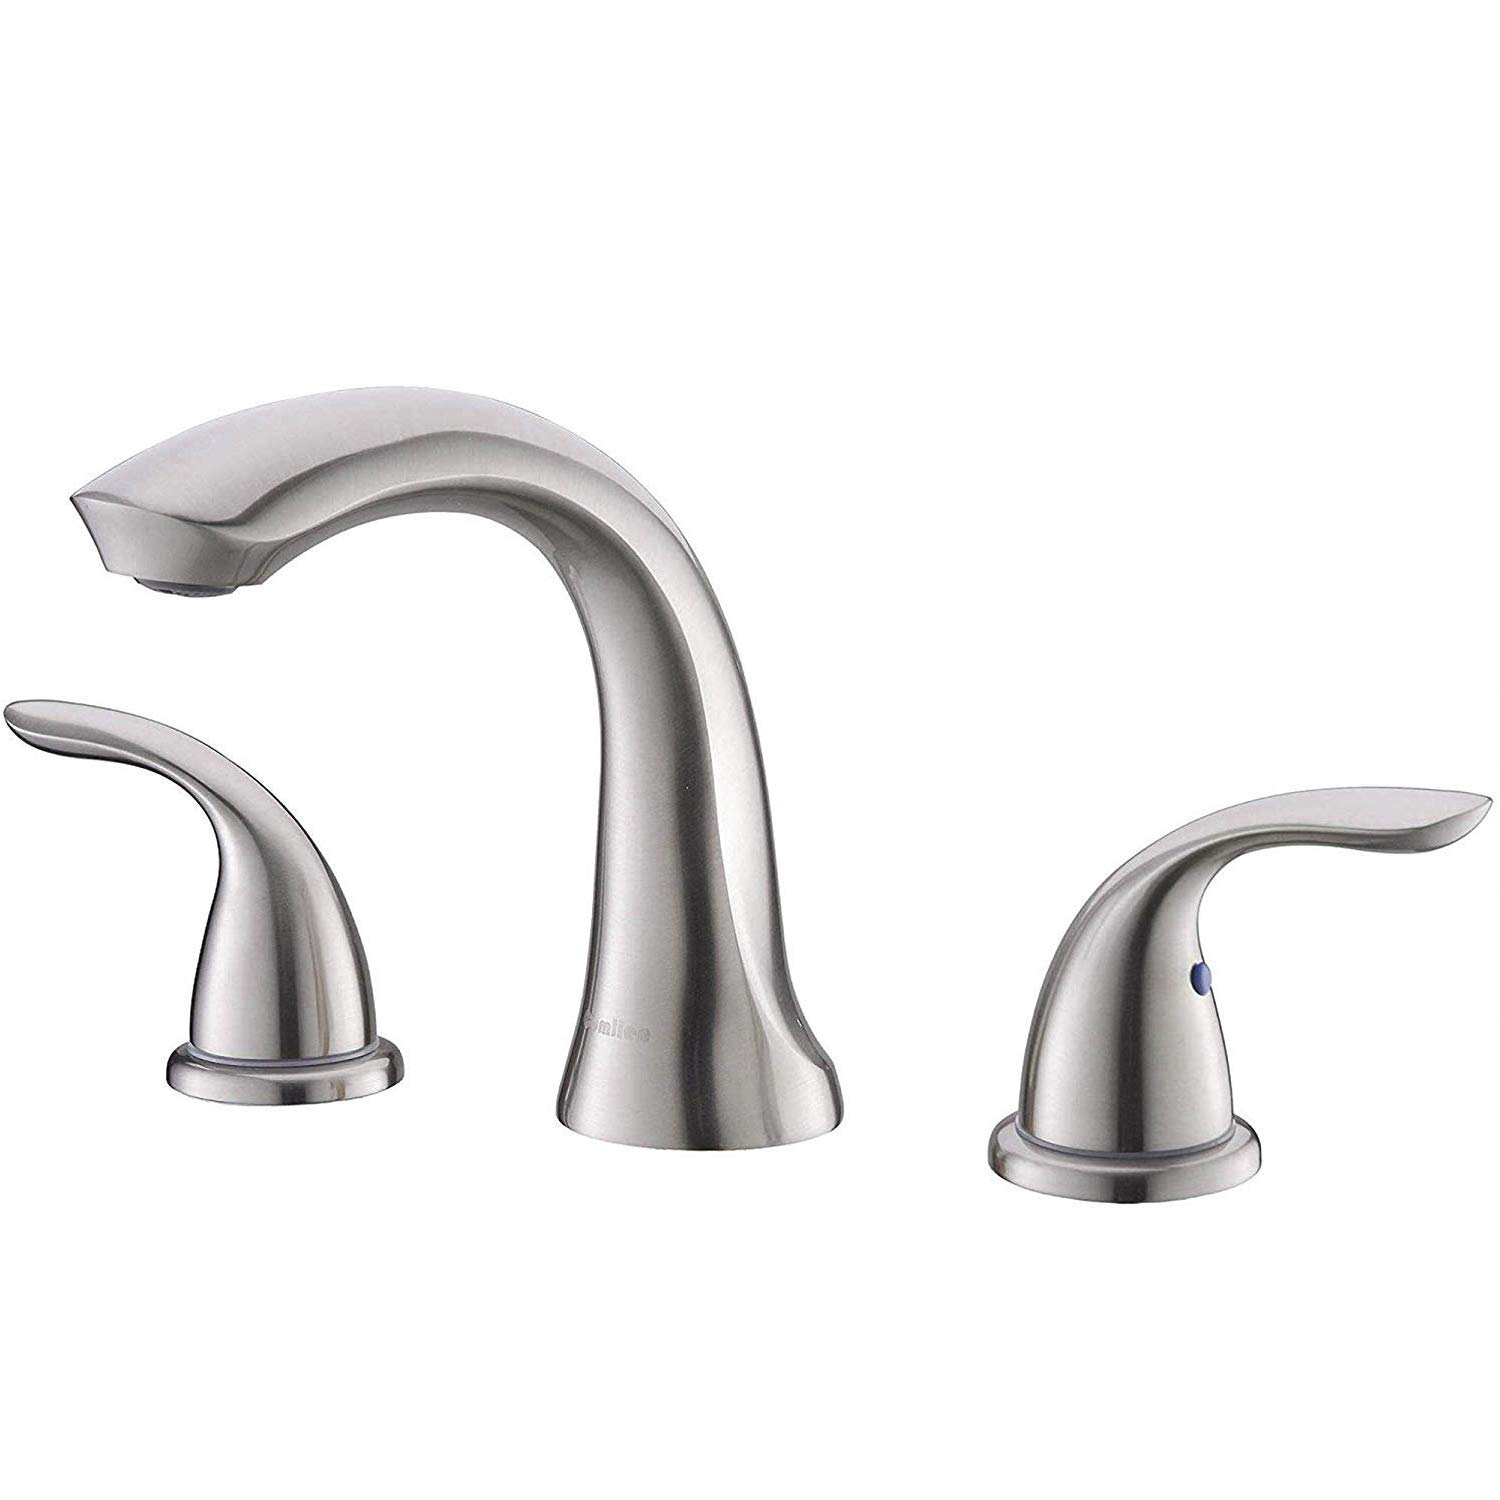 Comllen Well Recommend Modern Solid Brass Brushed Nickel 8 Inch Lavatory Widespread Bathroom Faucet Bathroom Sink Faucet Without Pop Up Drain